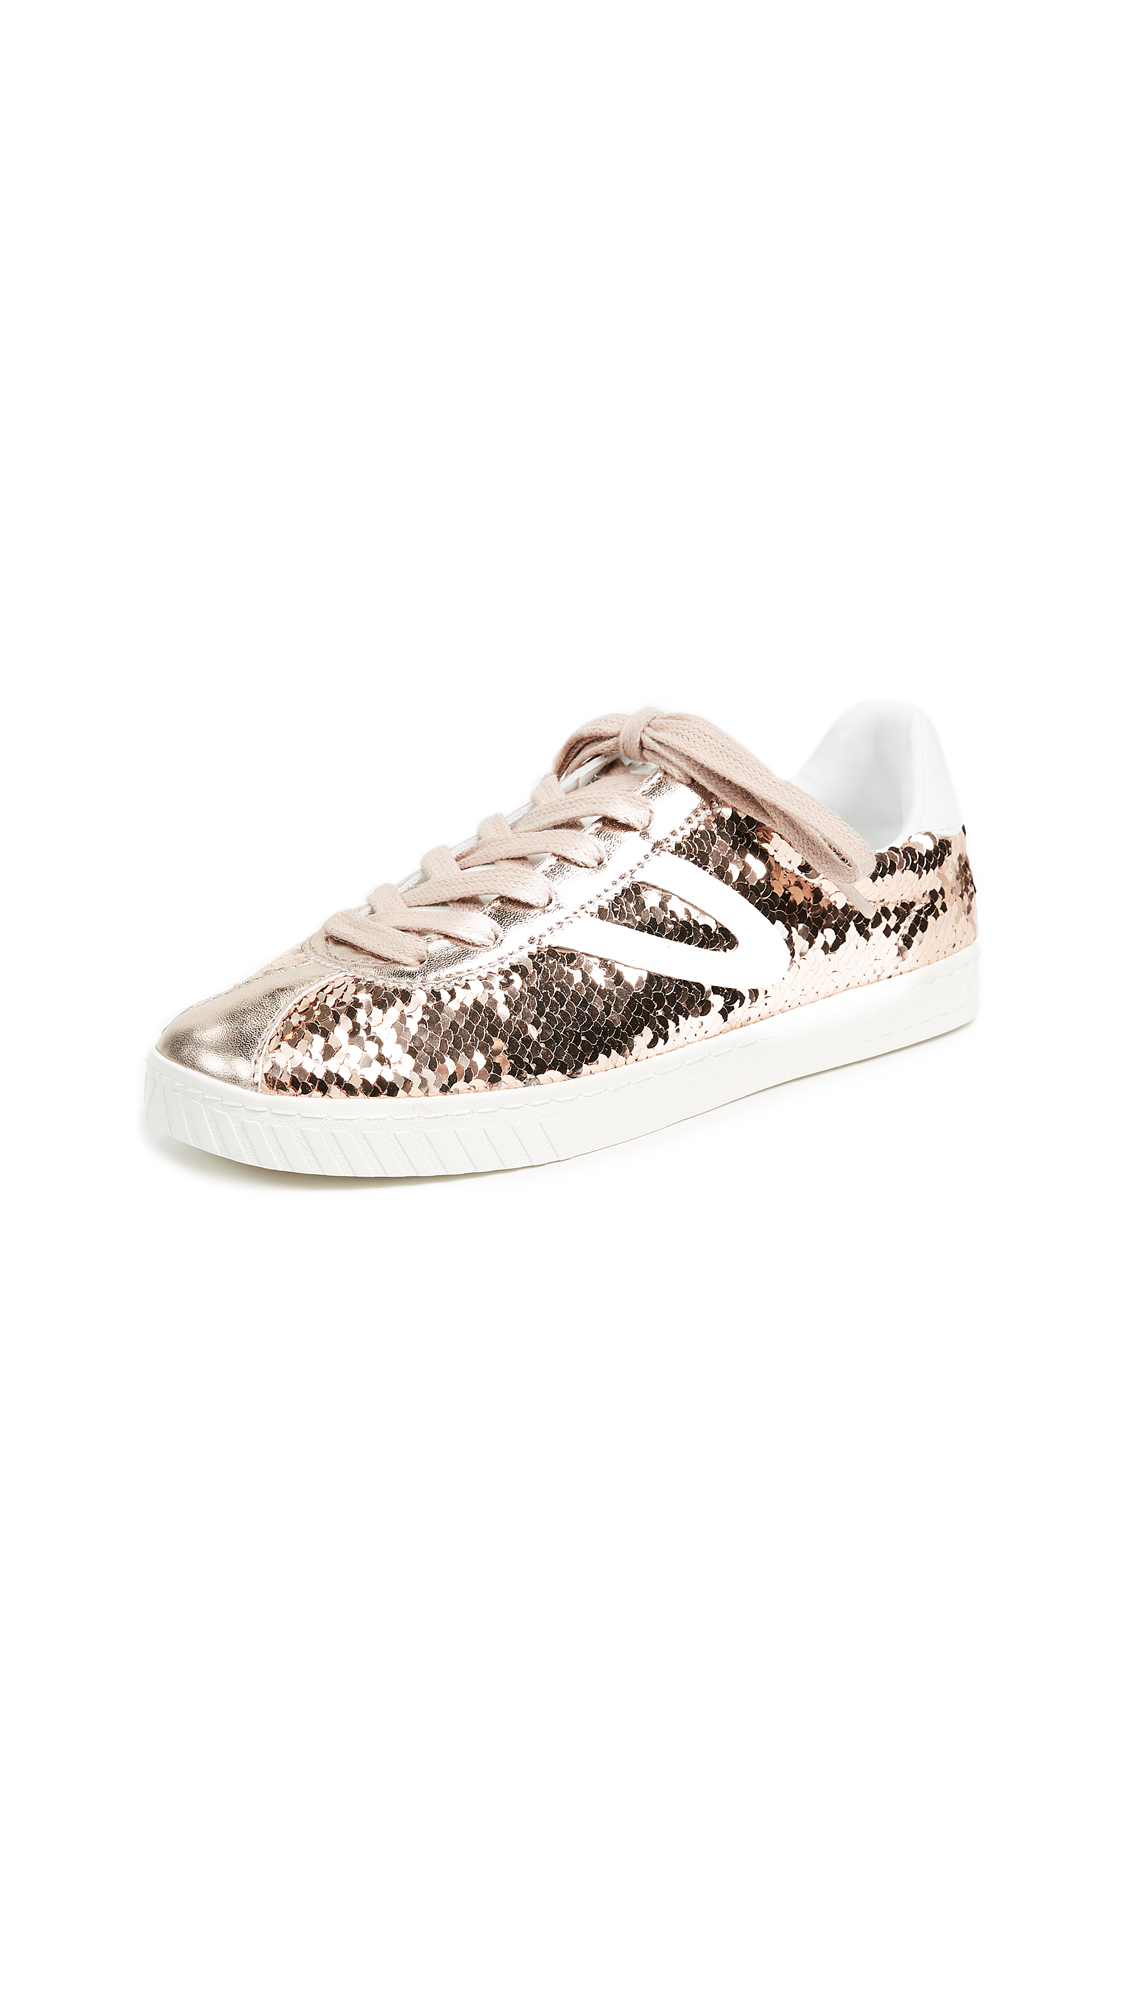 Tretorn Camden Metallic Lace Up Sneakers - Rose